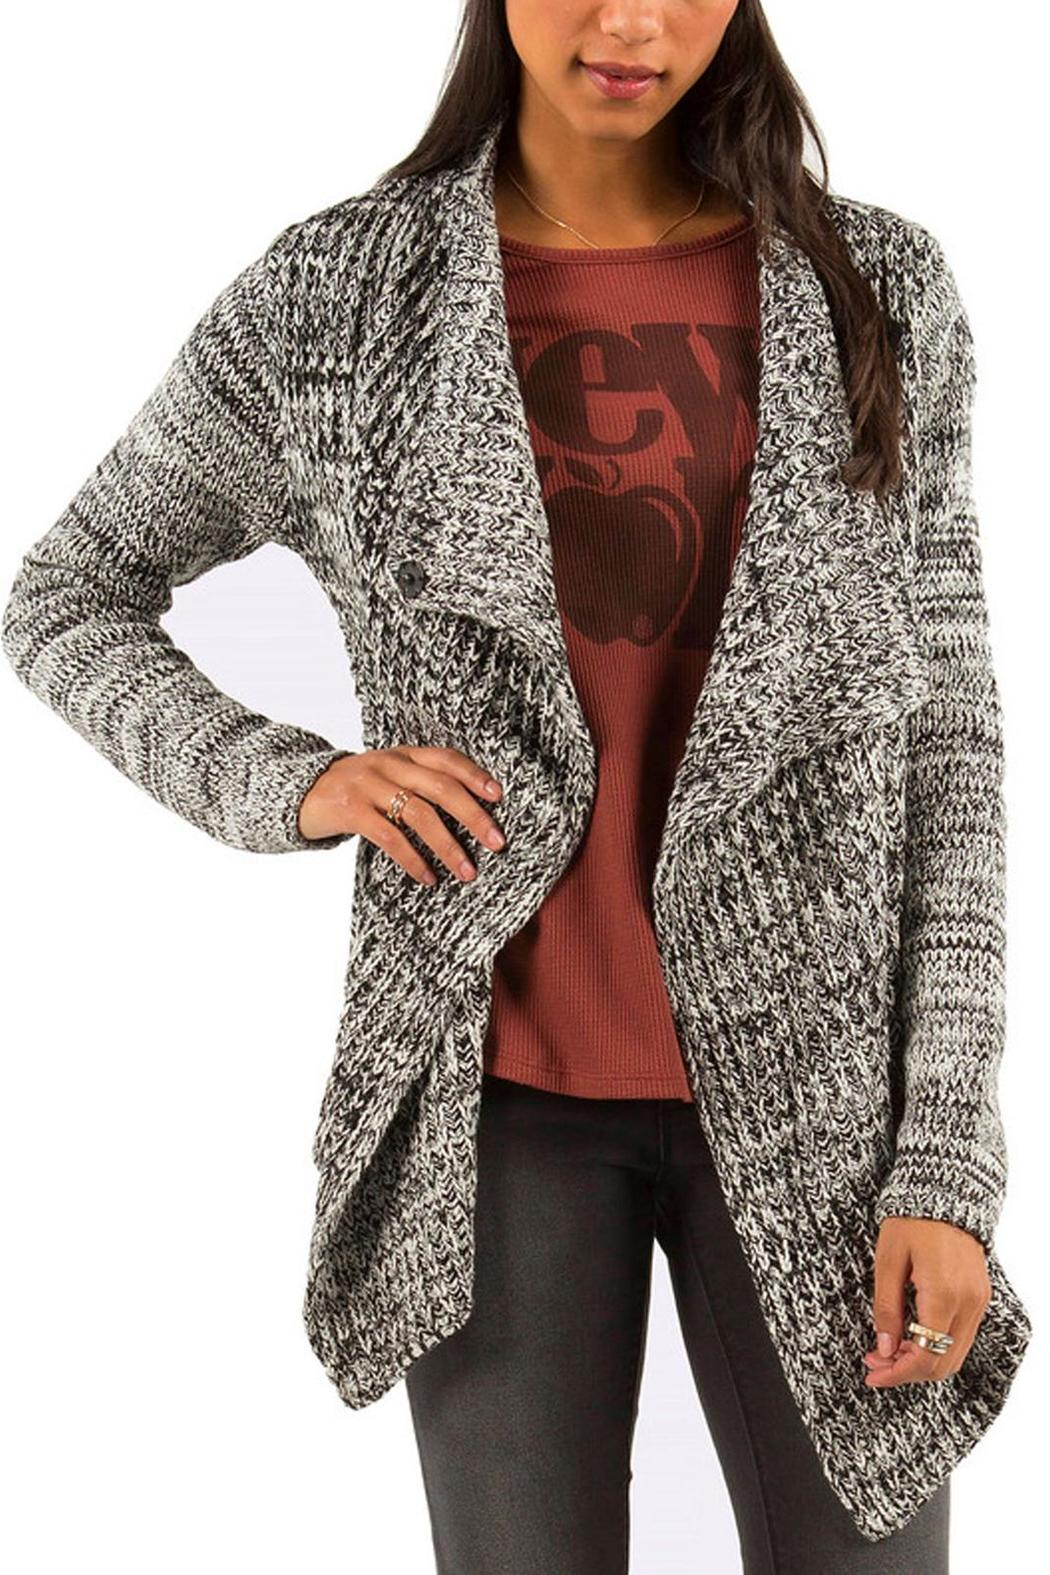 Central Park Hoodie Knitting Pattern Free : Element Eden Central Park Sweater from Mississippi by Wilai Boutique   Shopti...